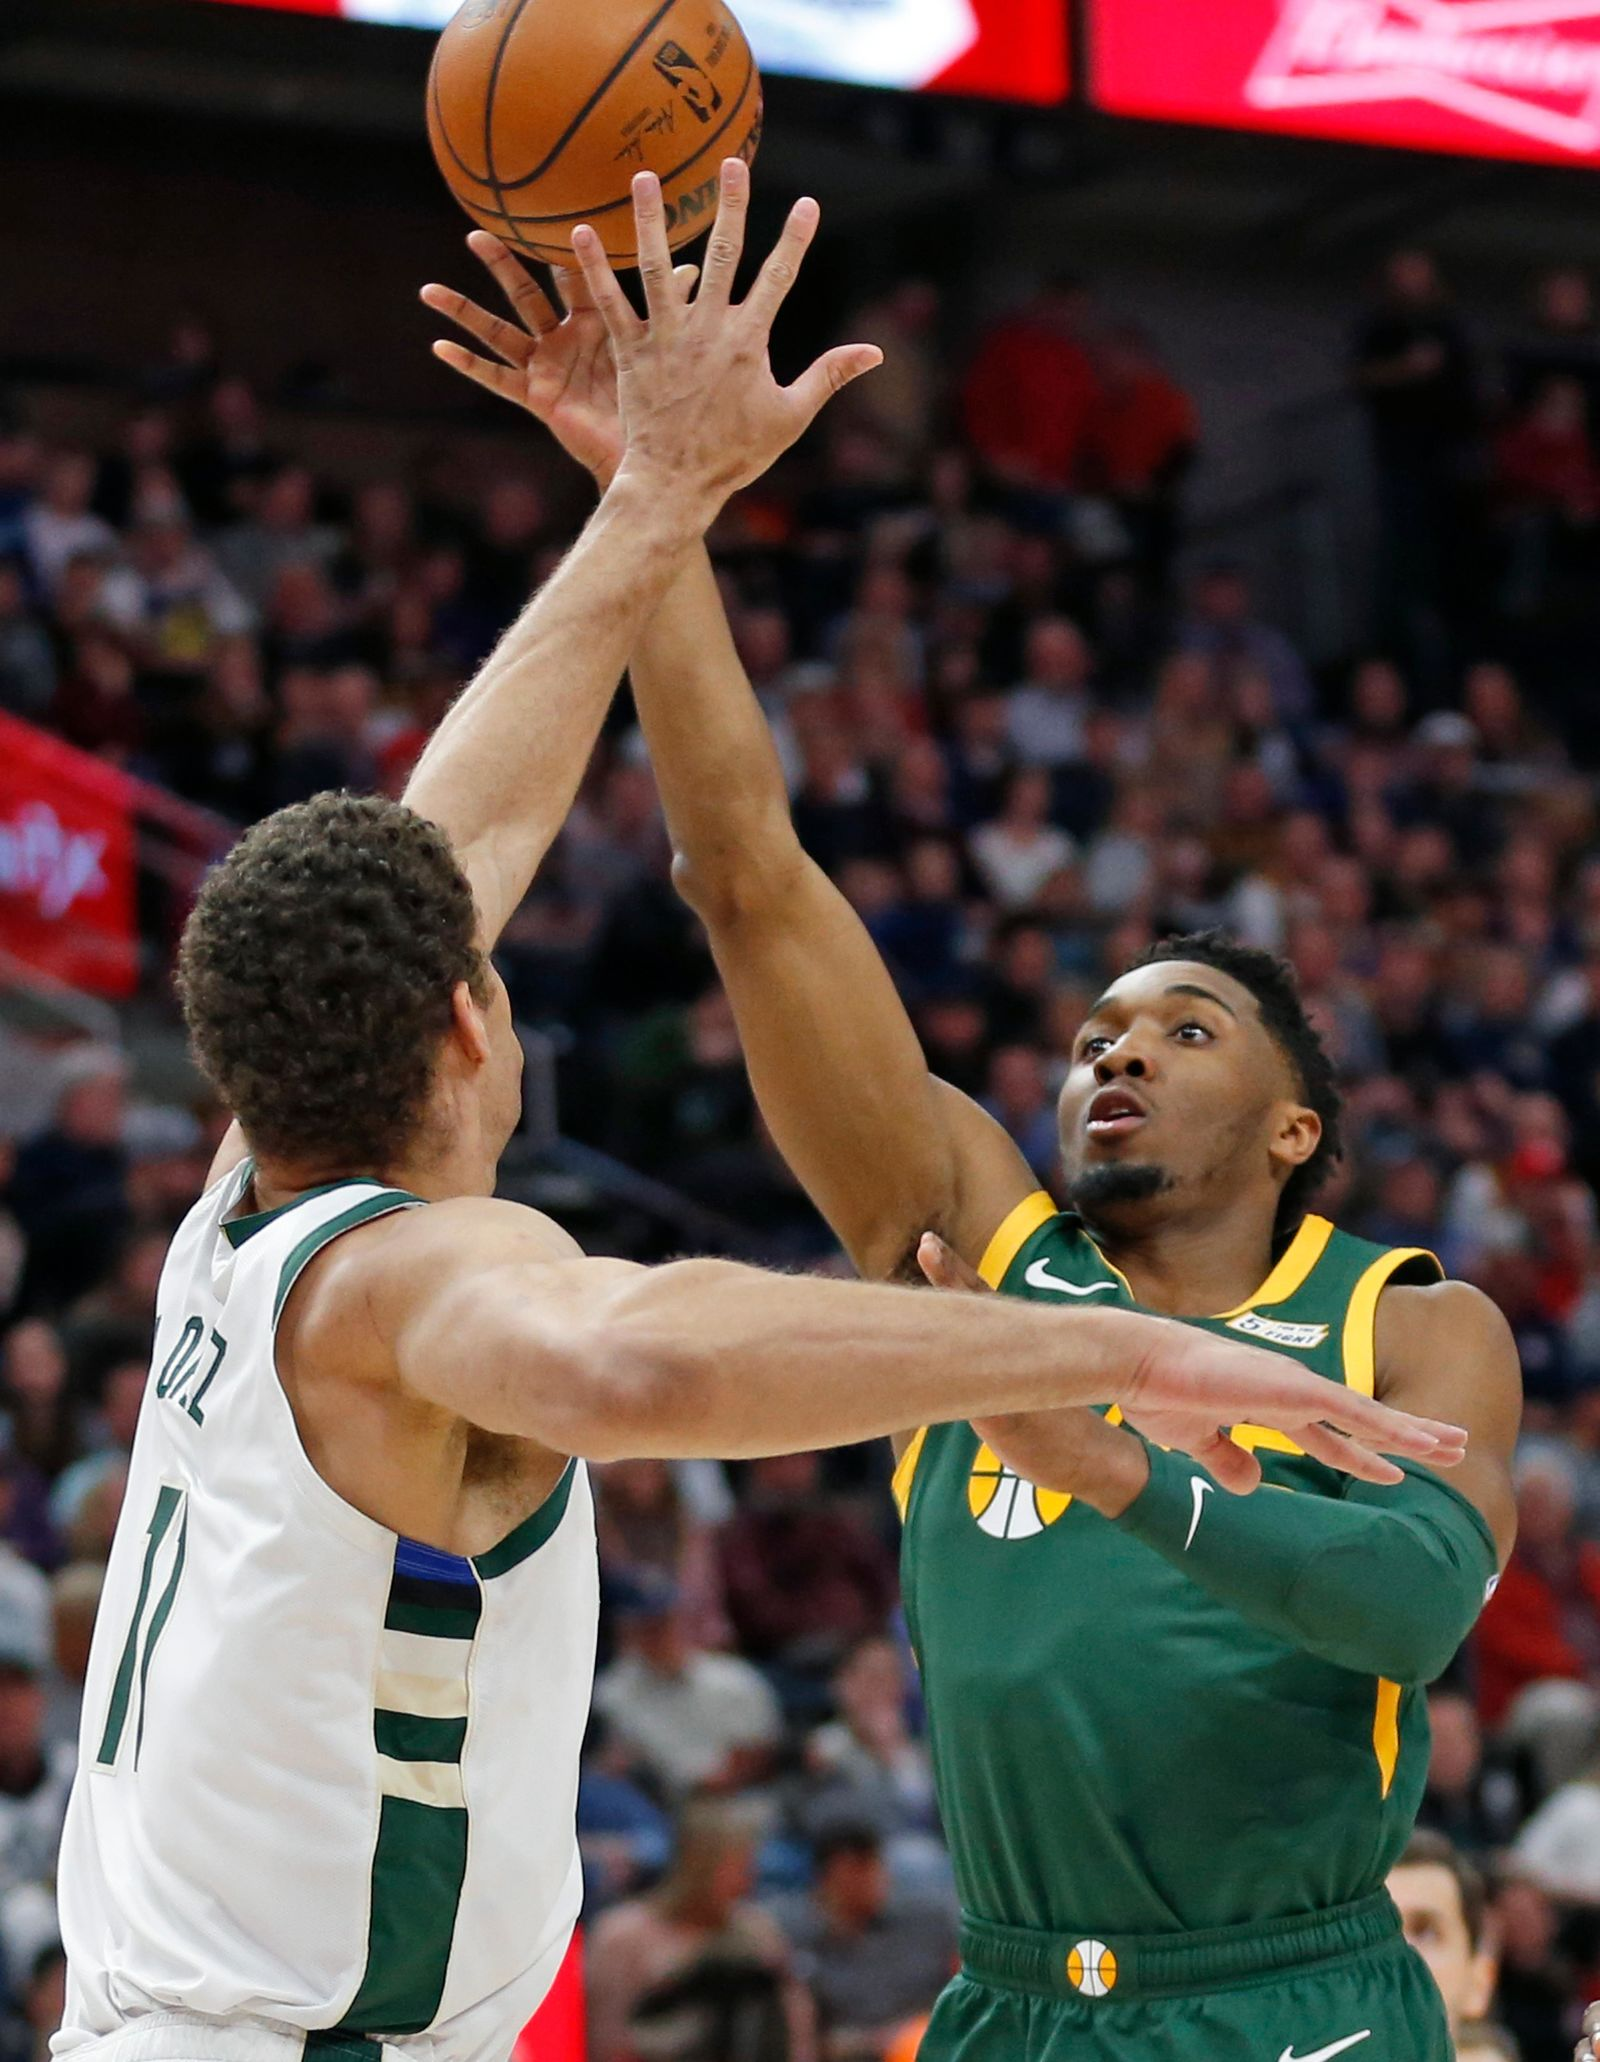 Utah Jazz guard Donovan Mitchell, right, lays the ball up as Milwaukee Bucks center Brook Lopez, left, defends during the first half of an NBA basketball game Saturday, March 2, 2019, in Salt Lake City. (AP Photo/Rick Bowmer)